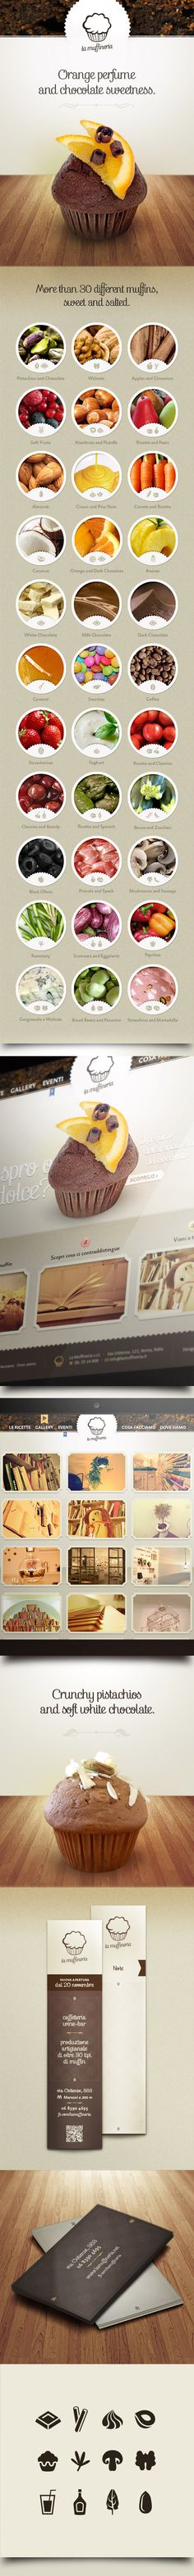 La Muffineria by Alessandro Suraci, via Behance #webdesign